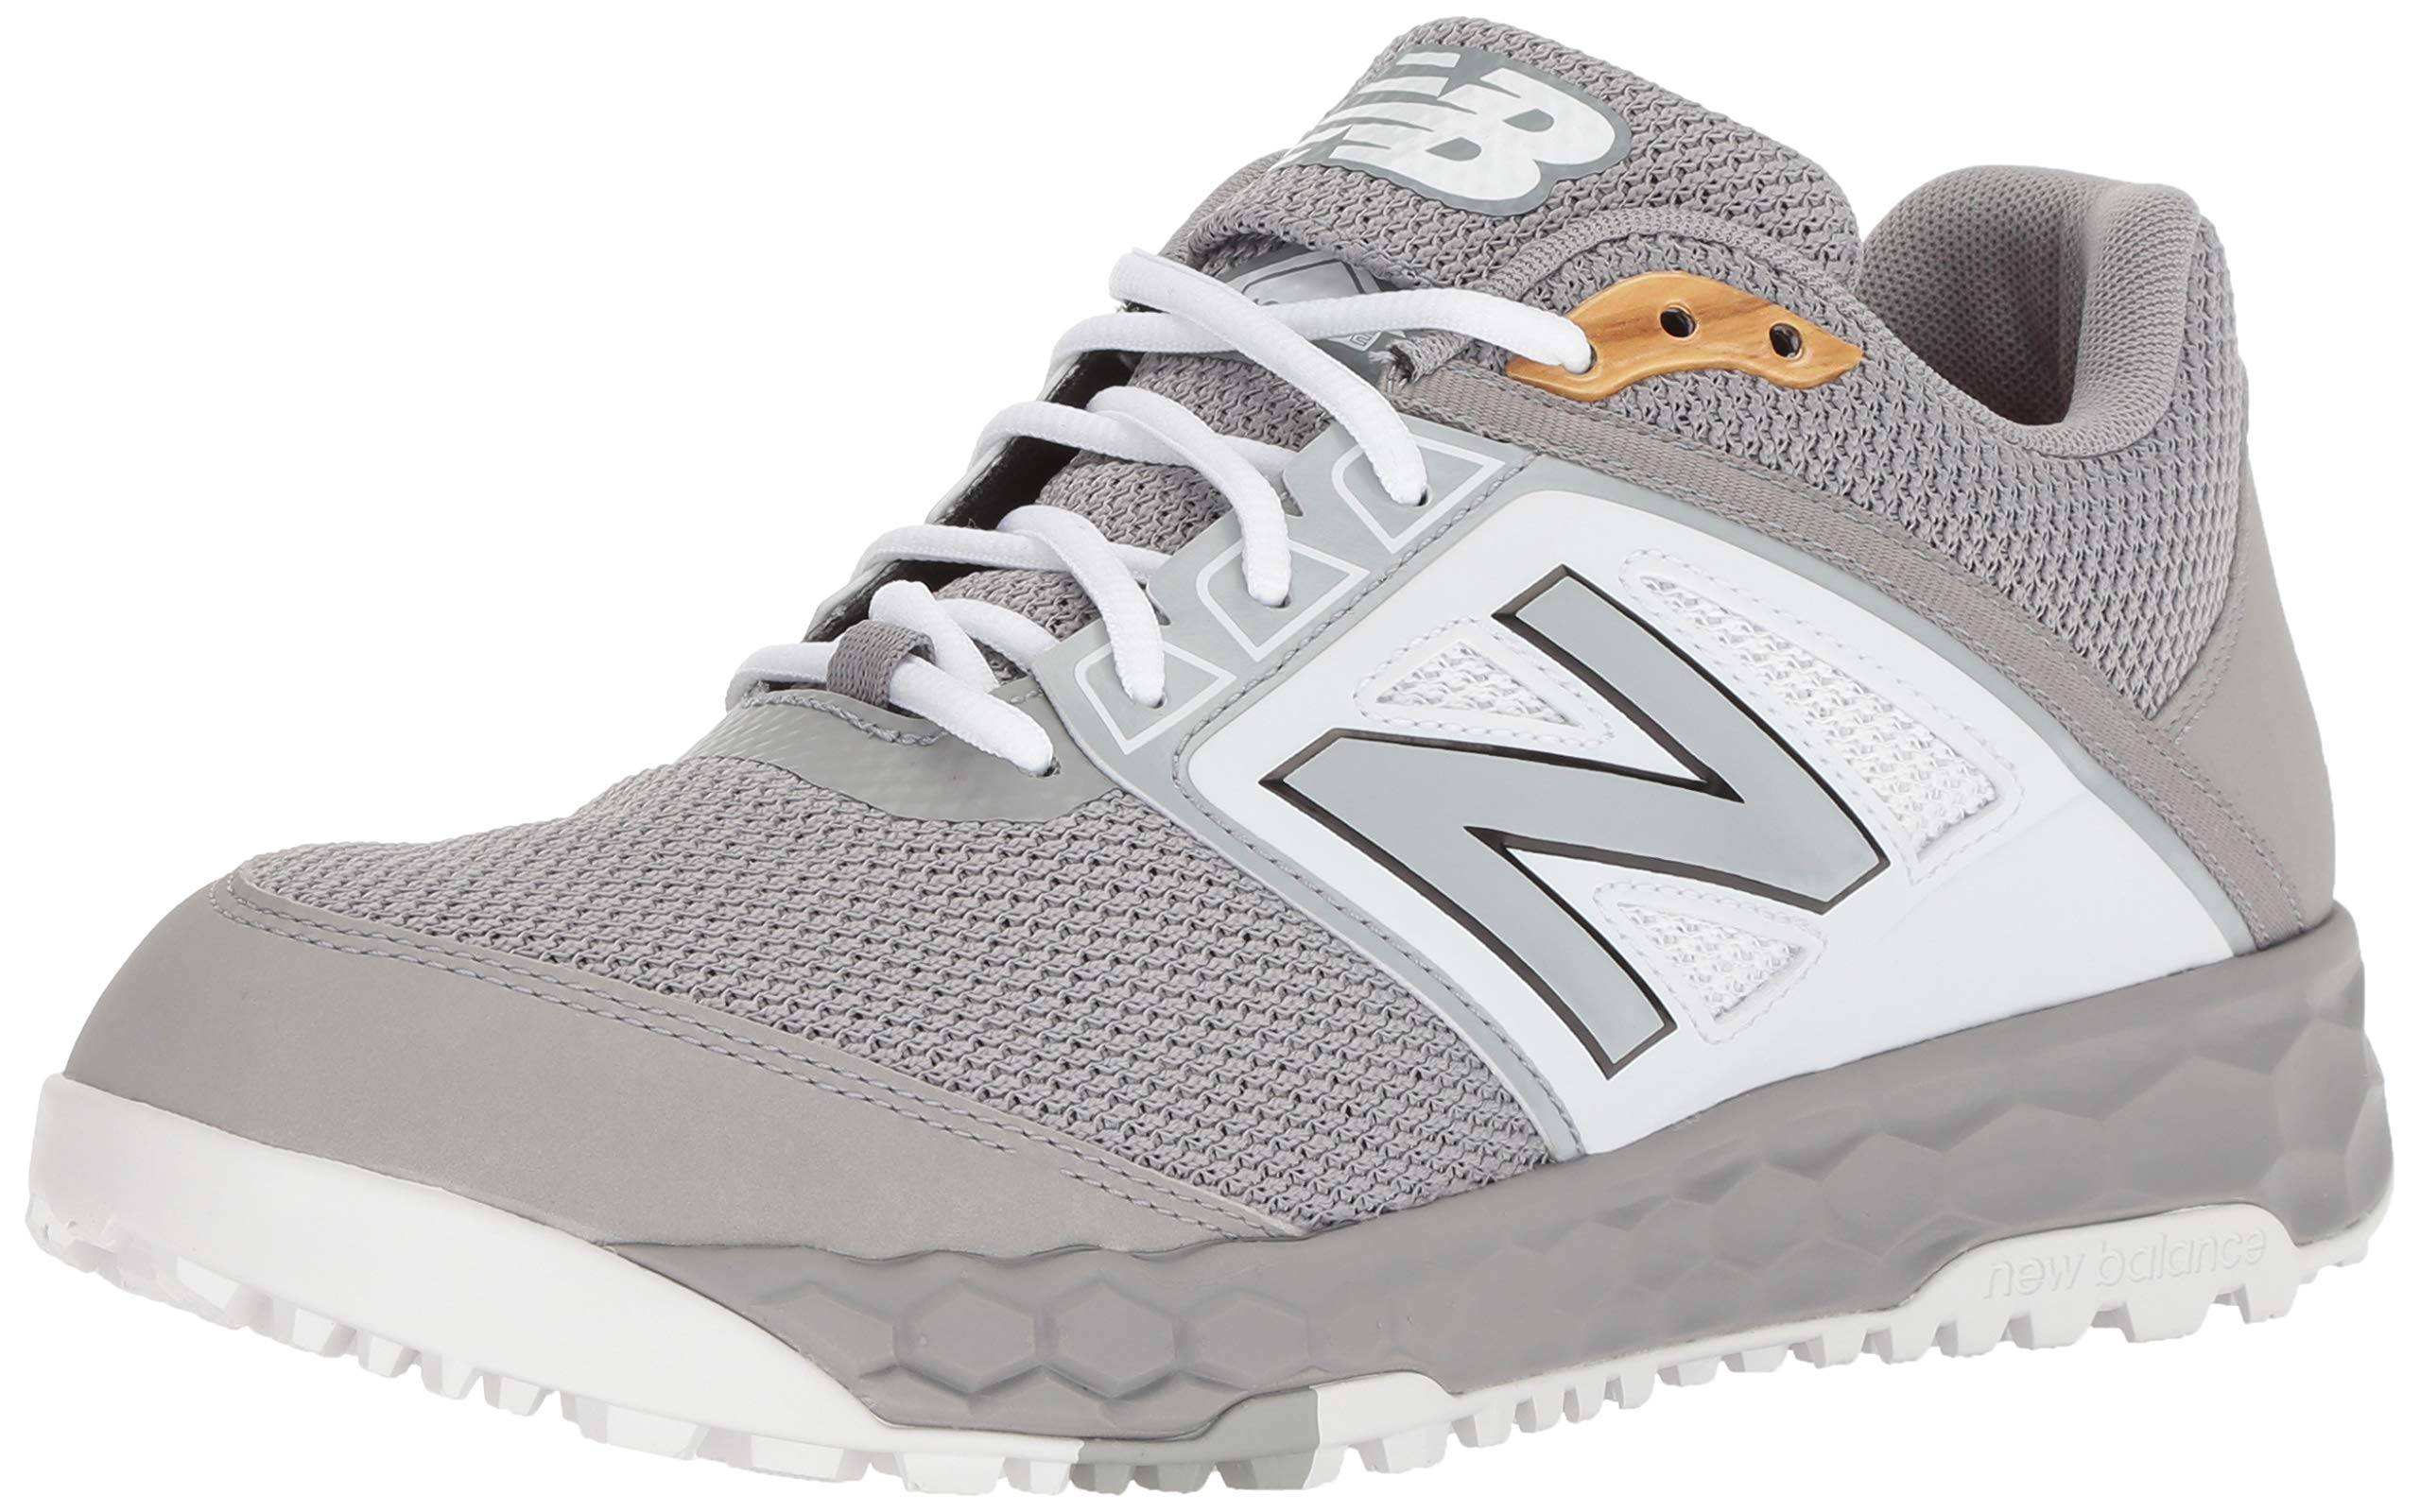 New Balance Men's 3000v4 Turf Baseball Shoe, Grey/White, 12 D US